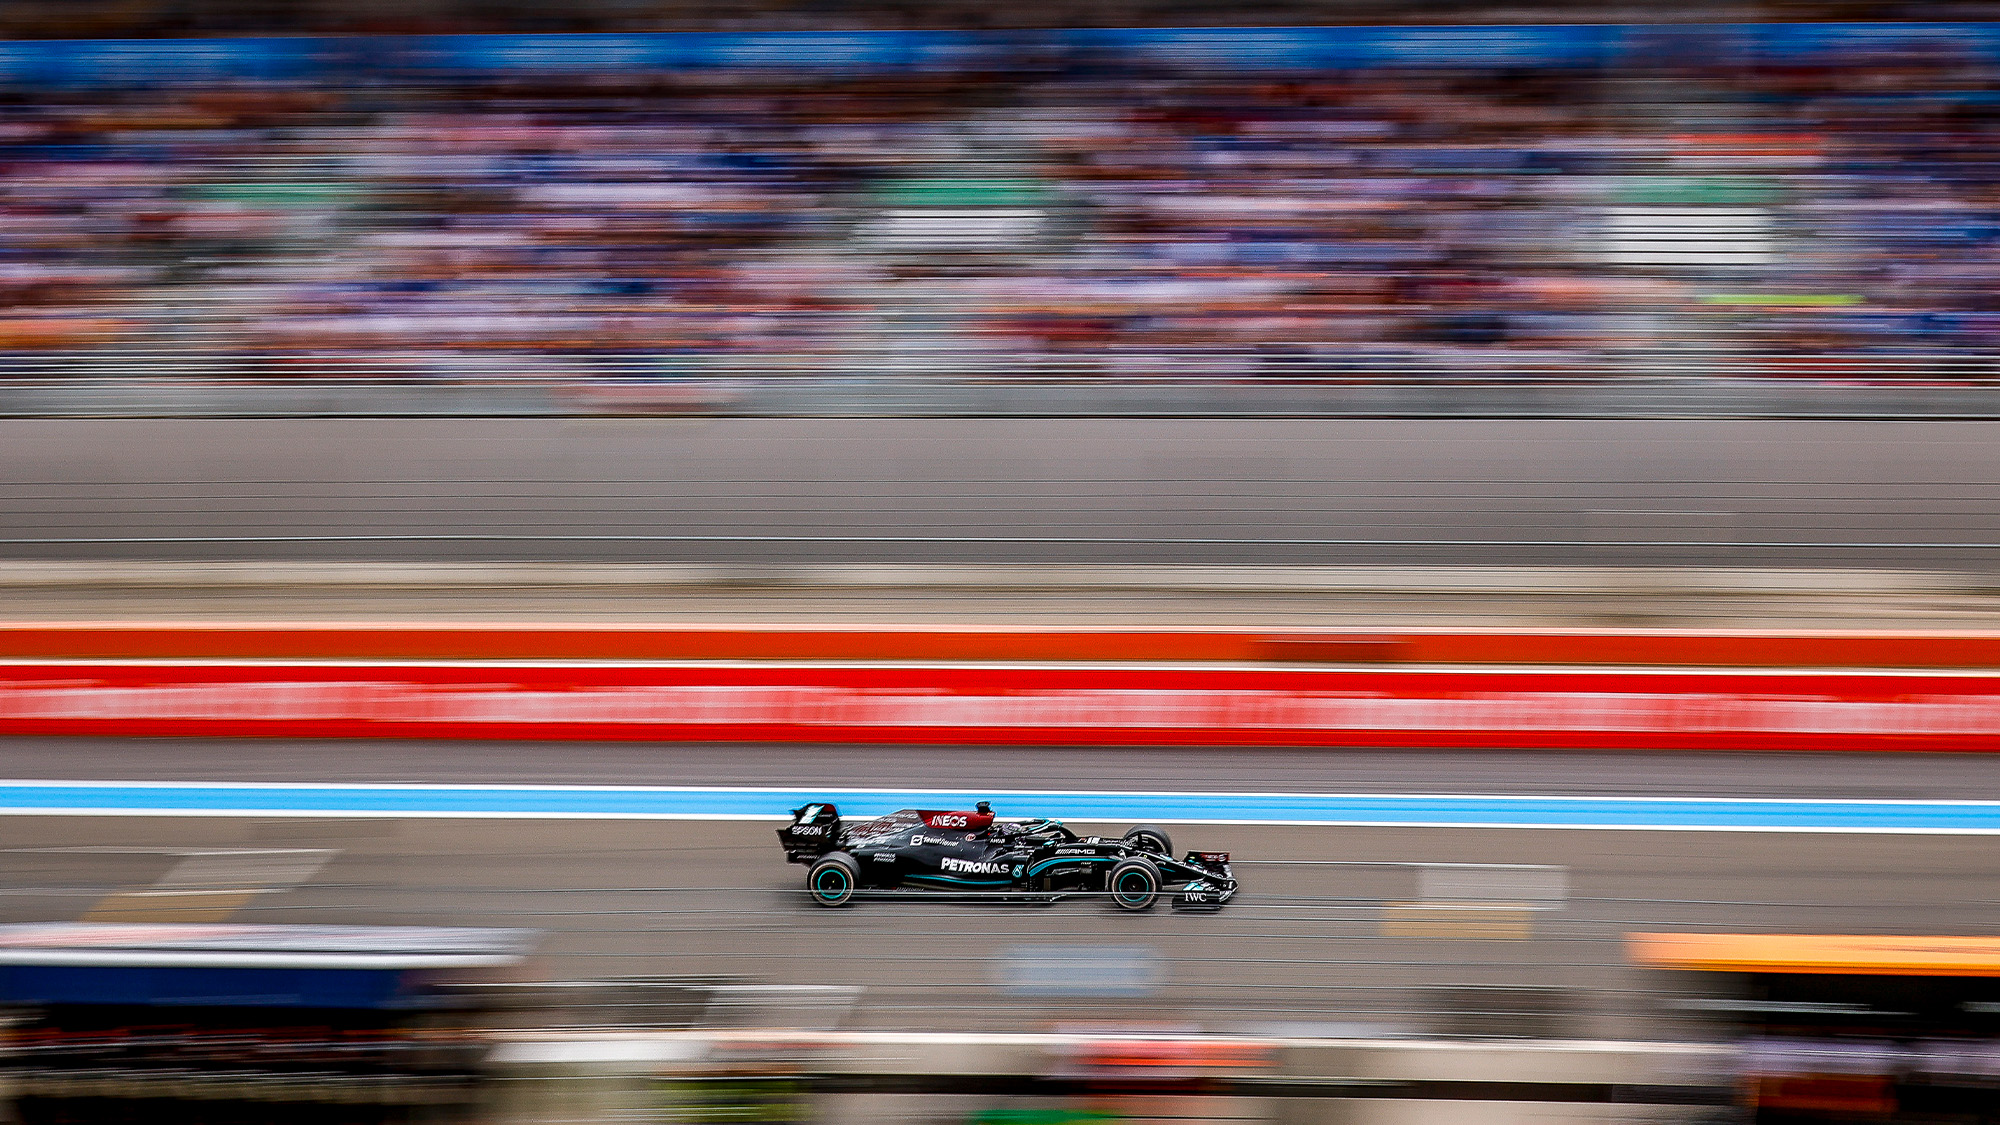 Lewis Hamilton in the 2021 French Grand Prix